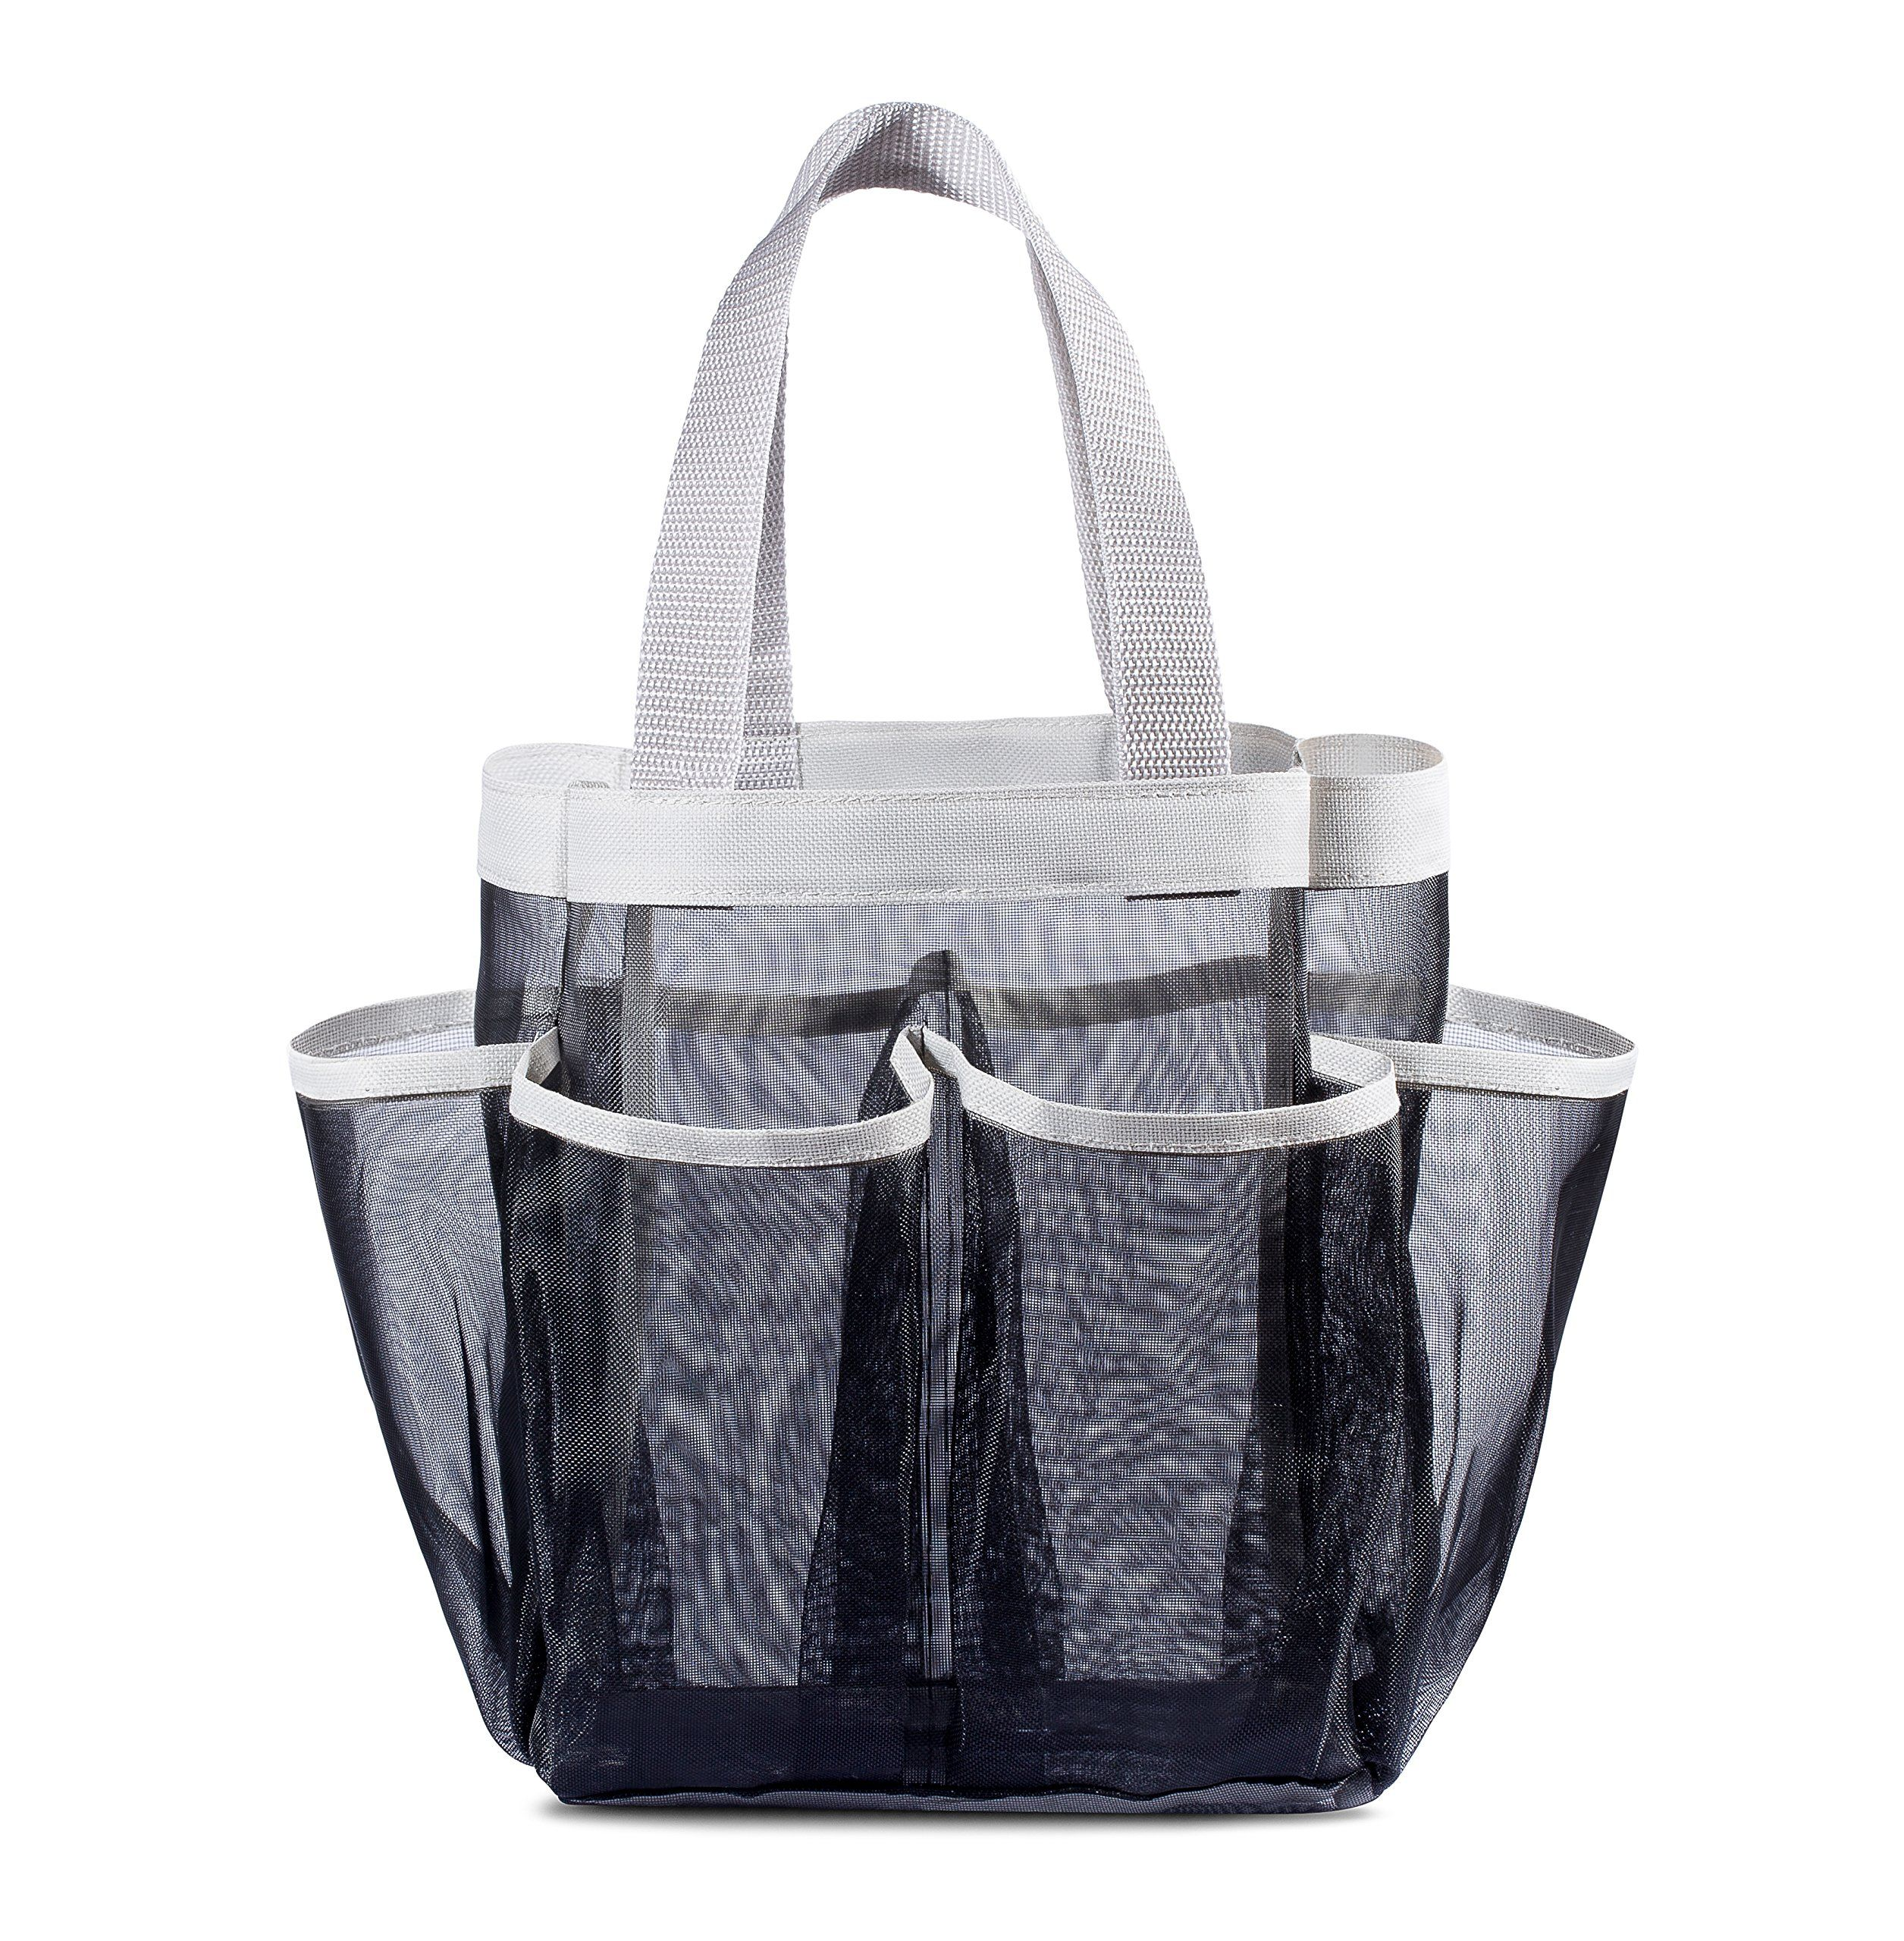 7 Pocket Shower Caddy Tote, Black - Keep your shower essentials ...